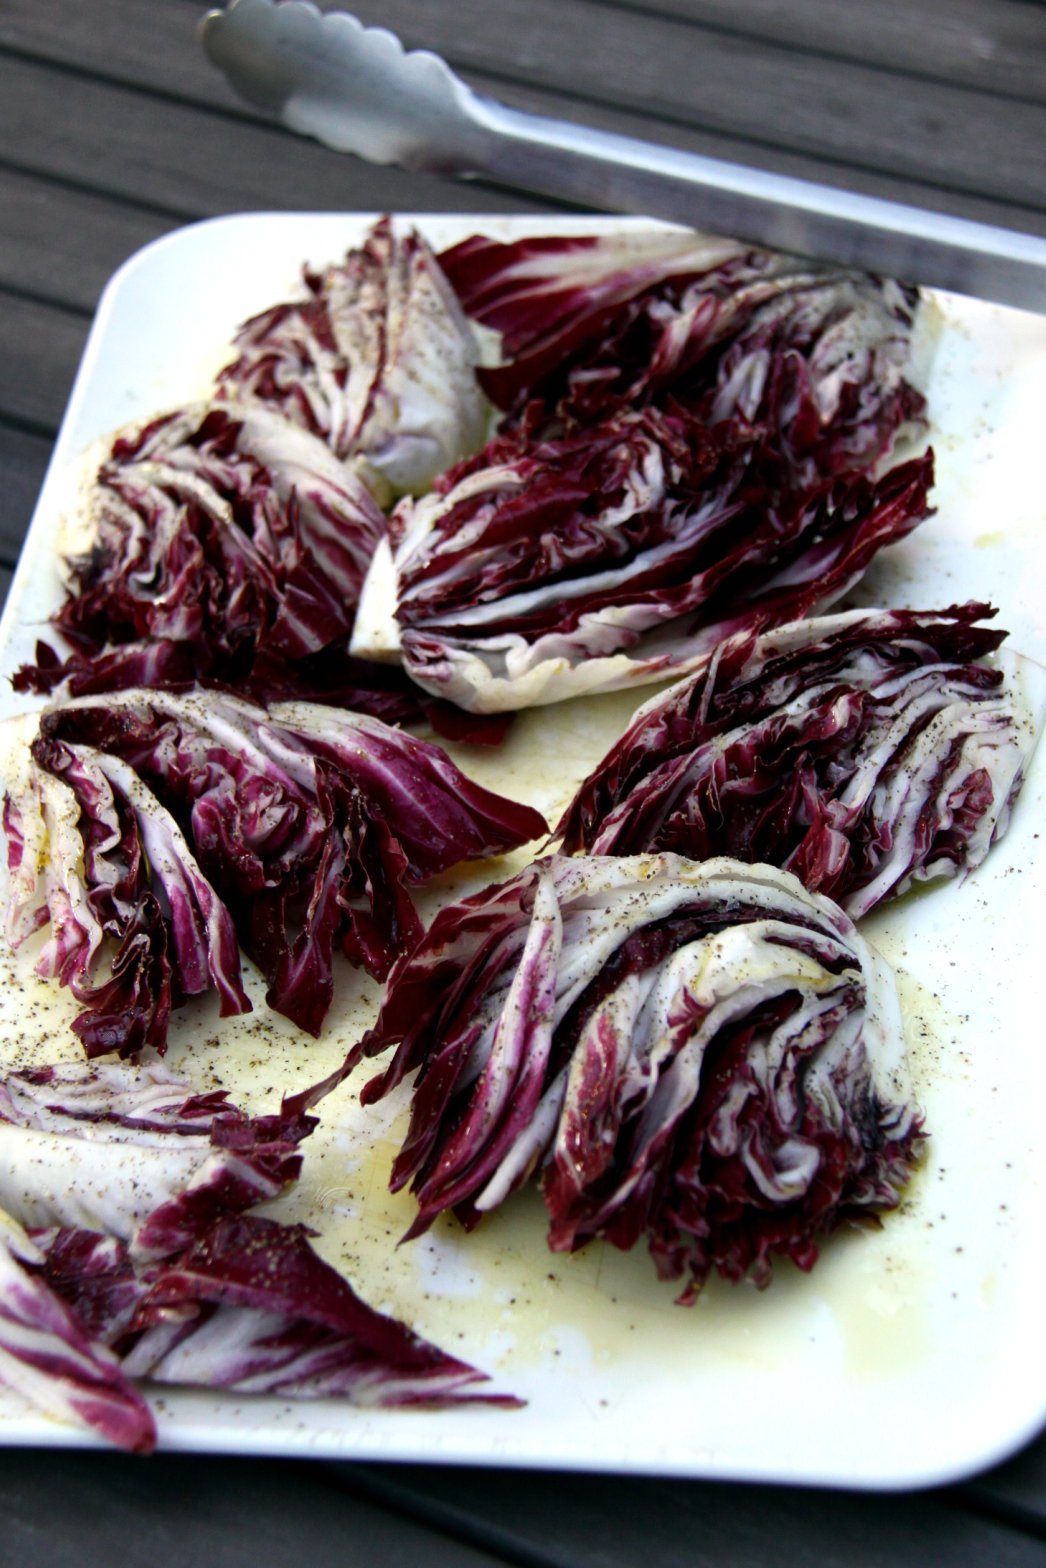 radicchio with olive oil